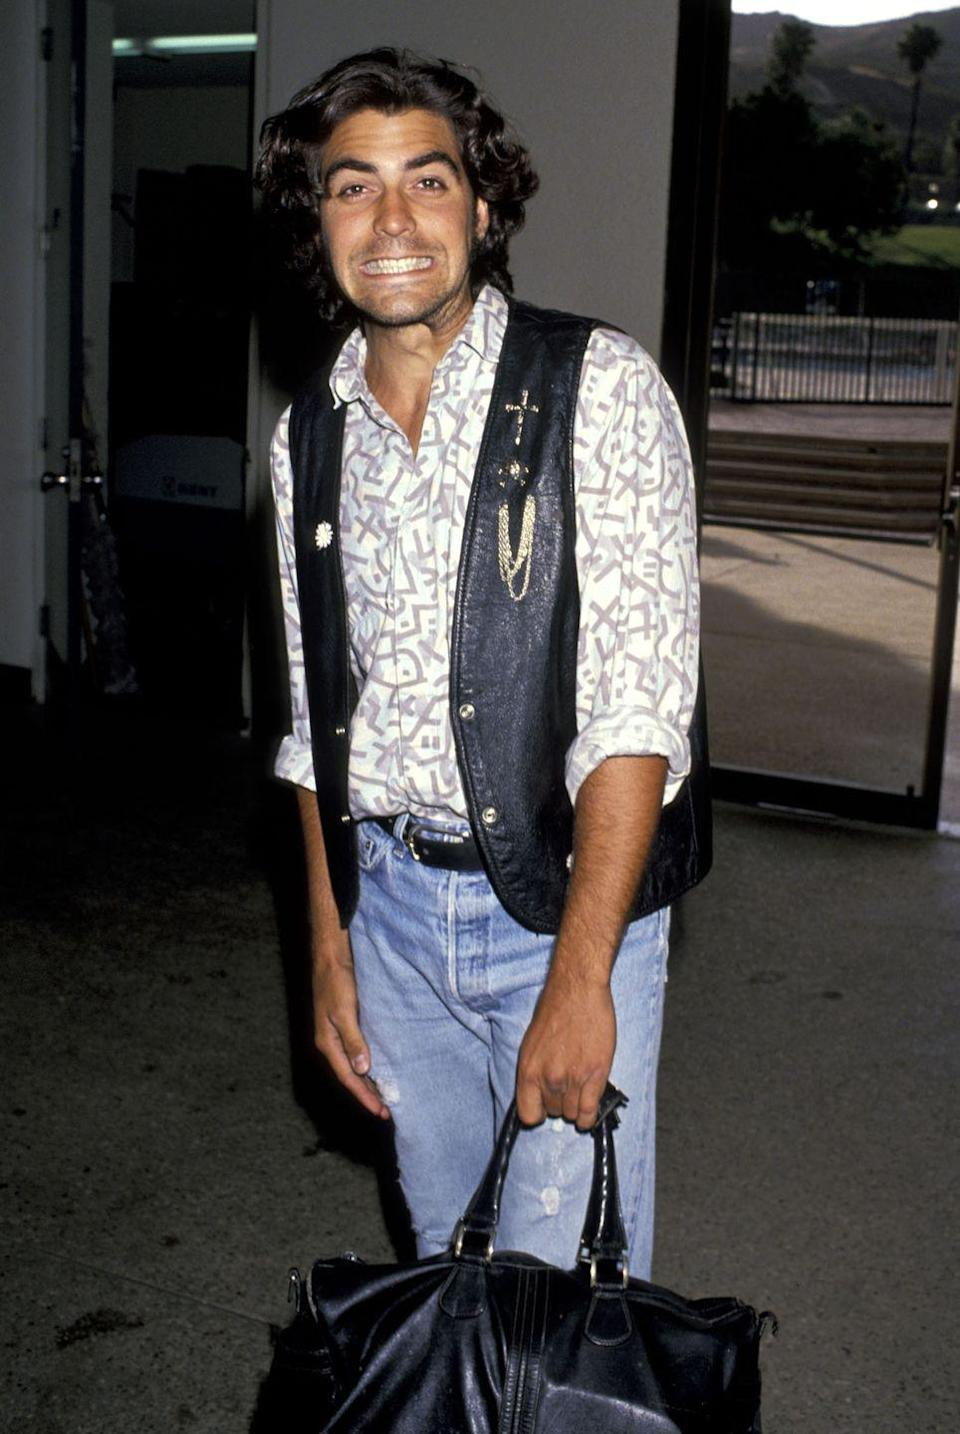 <p>Clooney attending a celebrity basketball game on June 24, 1989 in Malibu, California.</p>